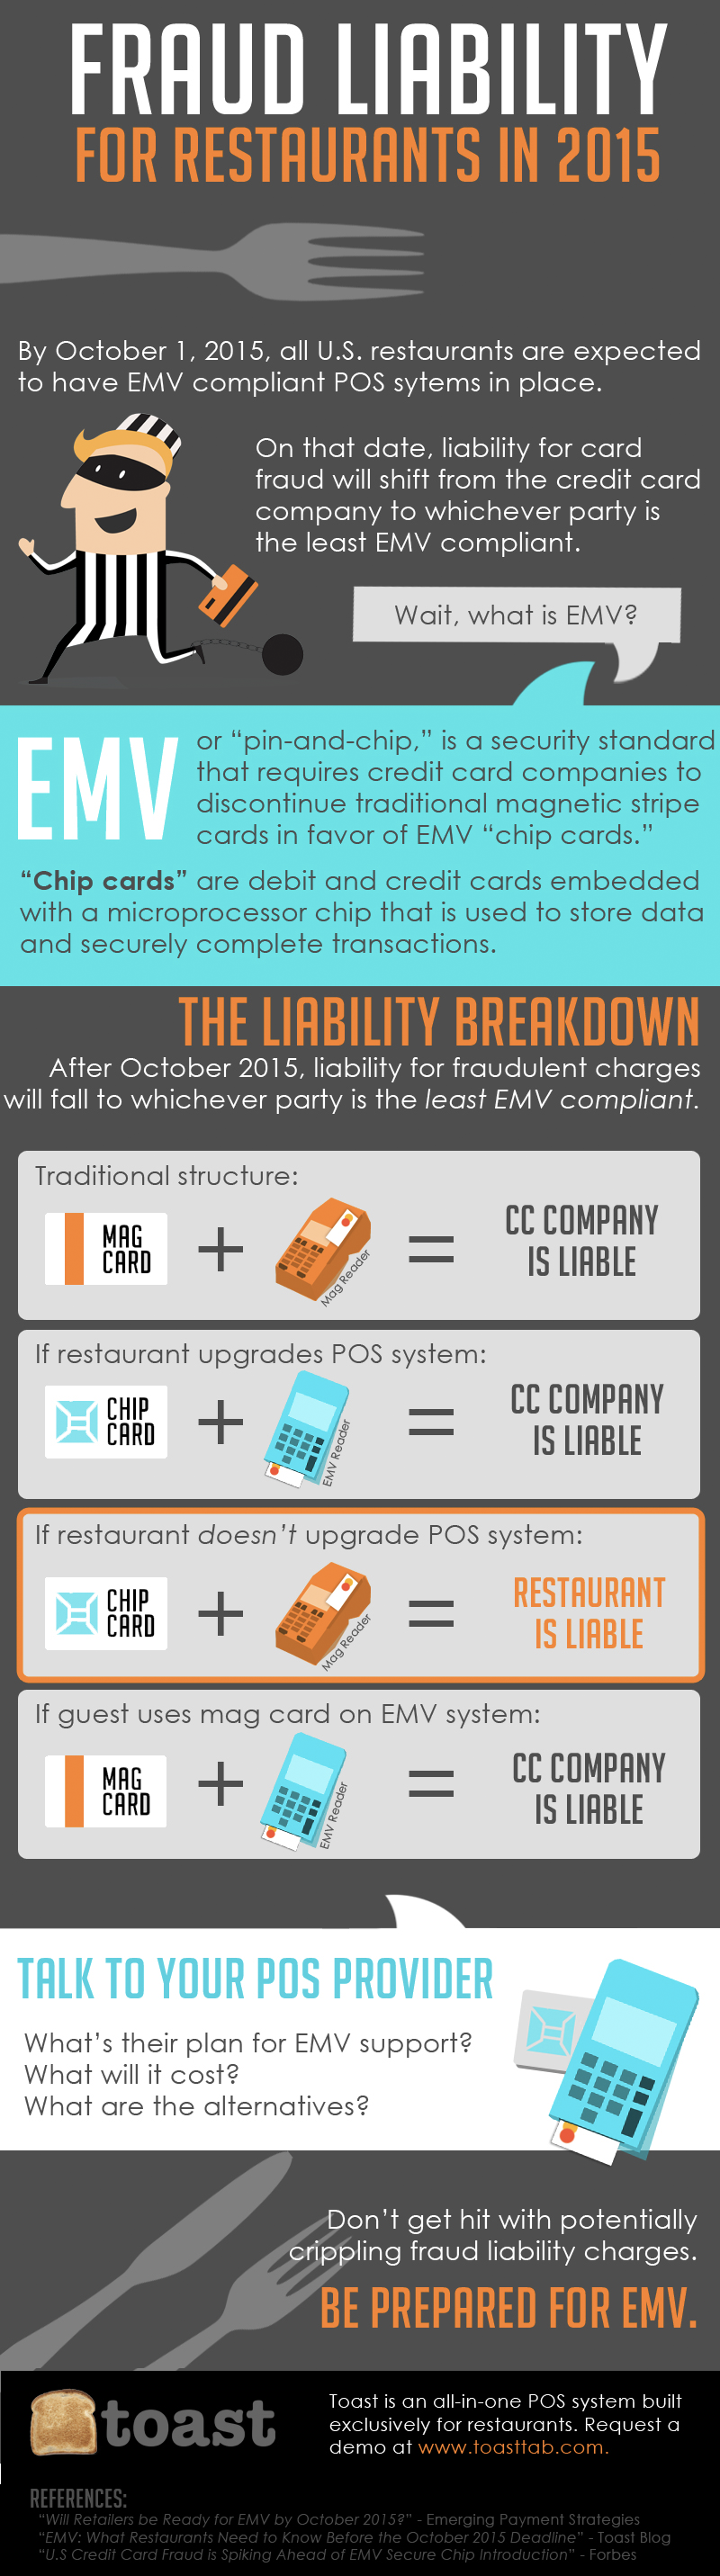 emv-shortened-infographic2.png